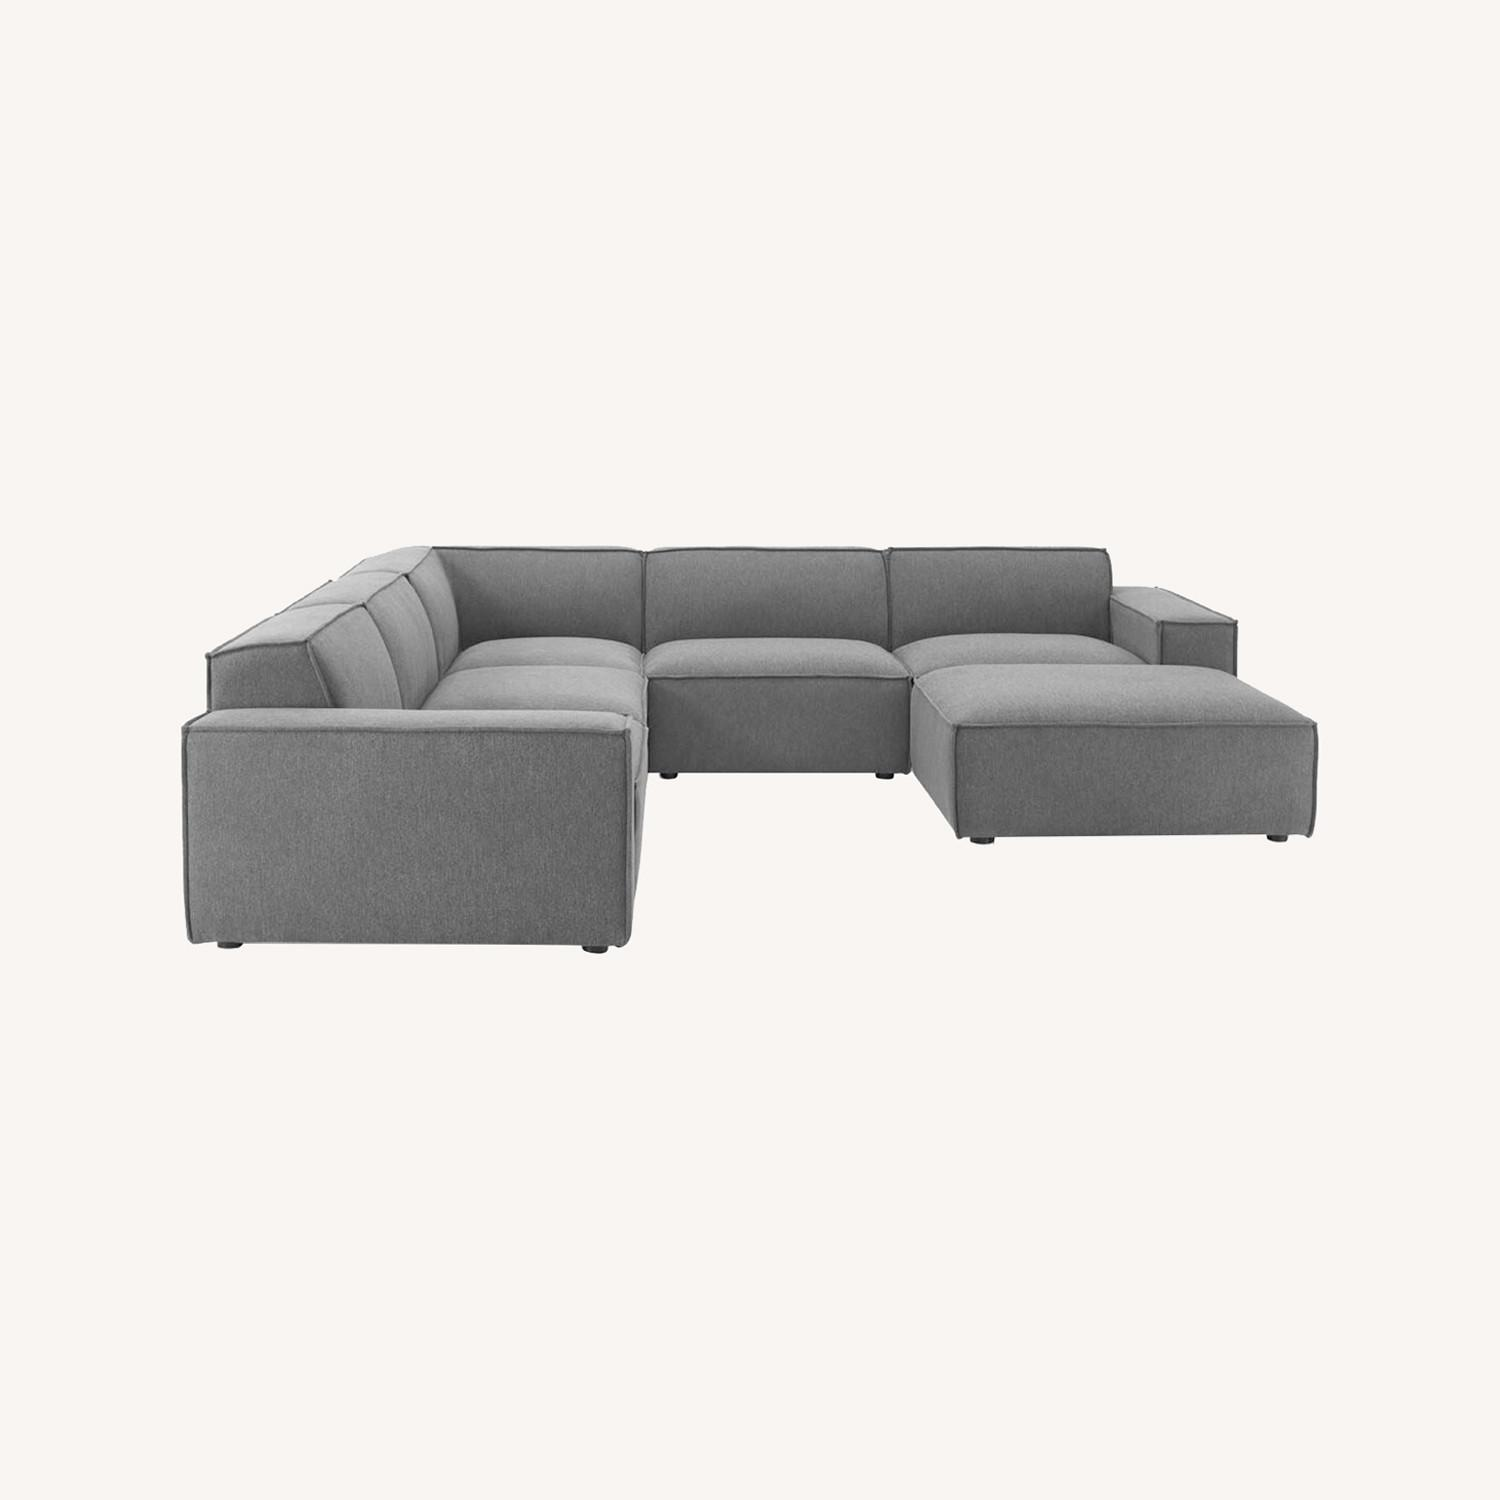 6-Piece Sectional Sofa In Charcoal Fabric - image-13